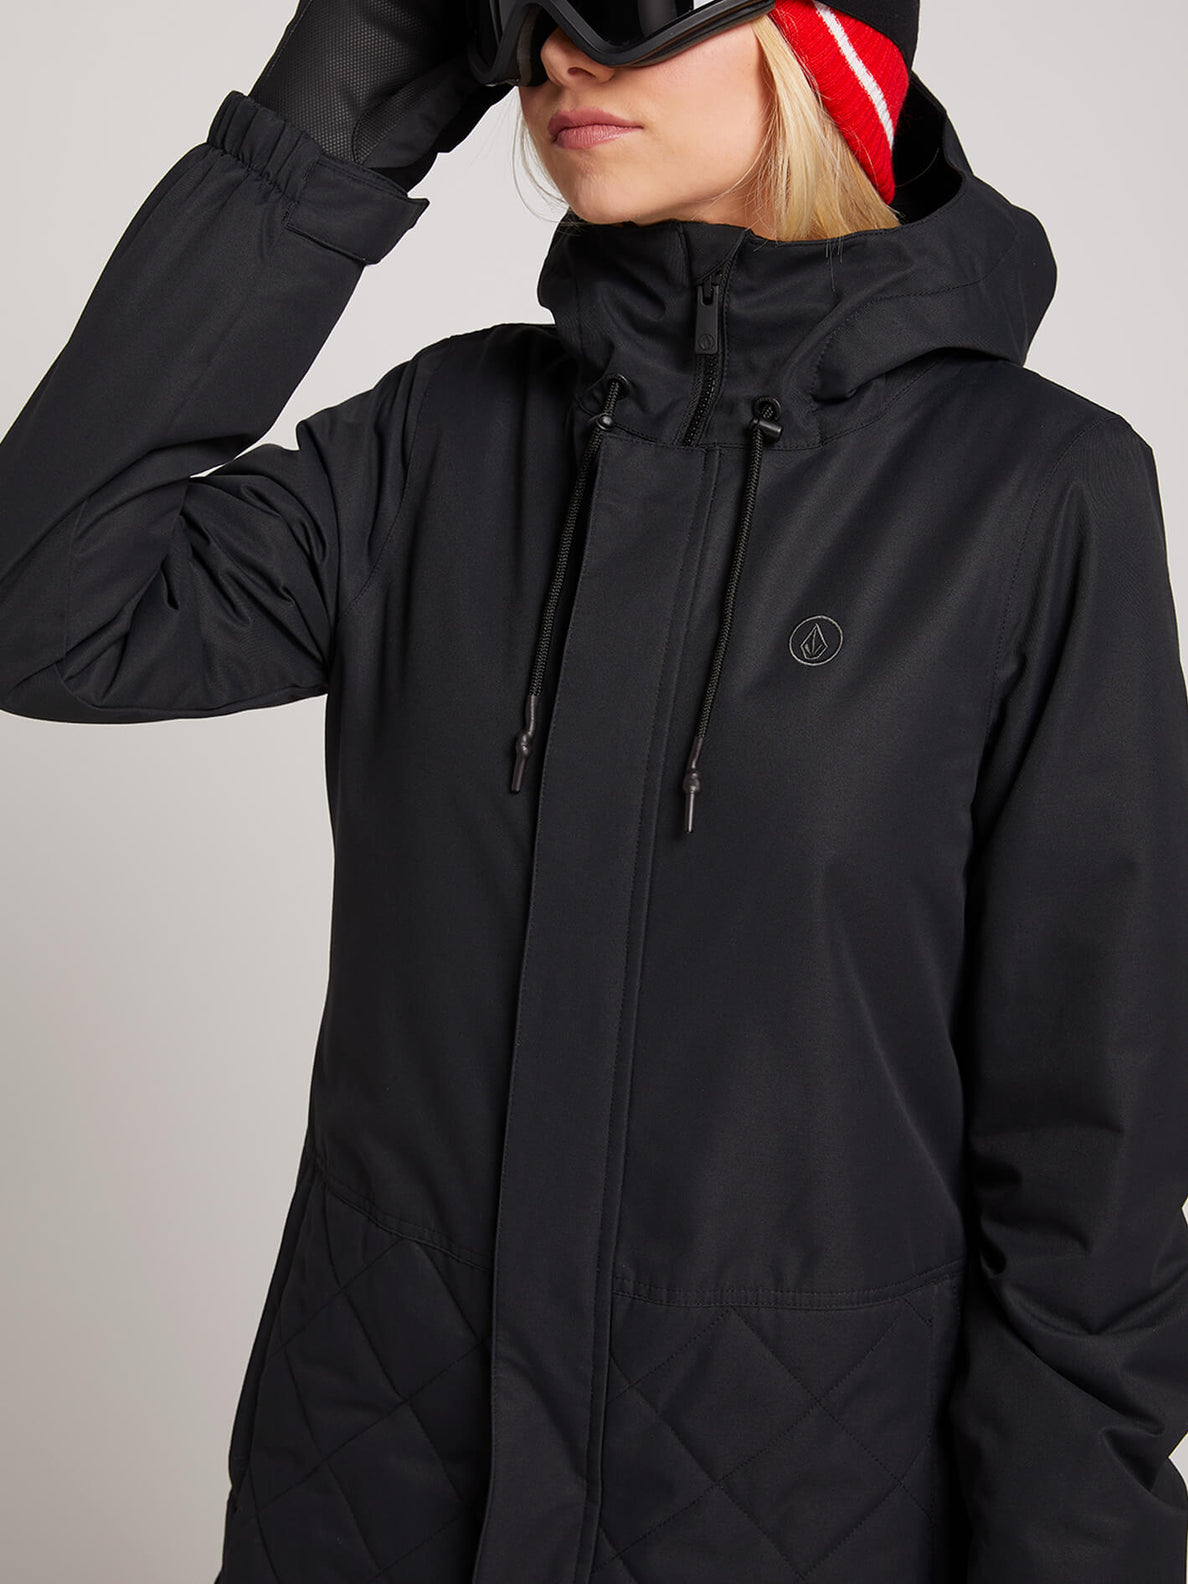 Winrose Insulated Jacket In Black, Second Alternate View